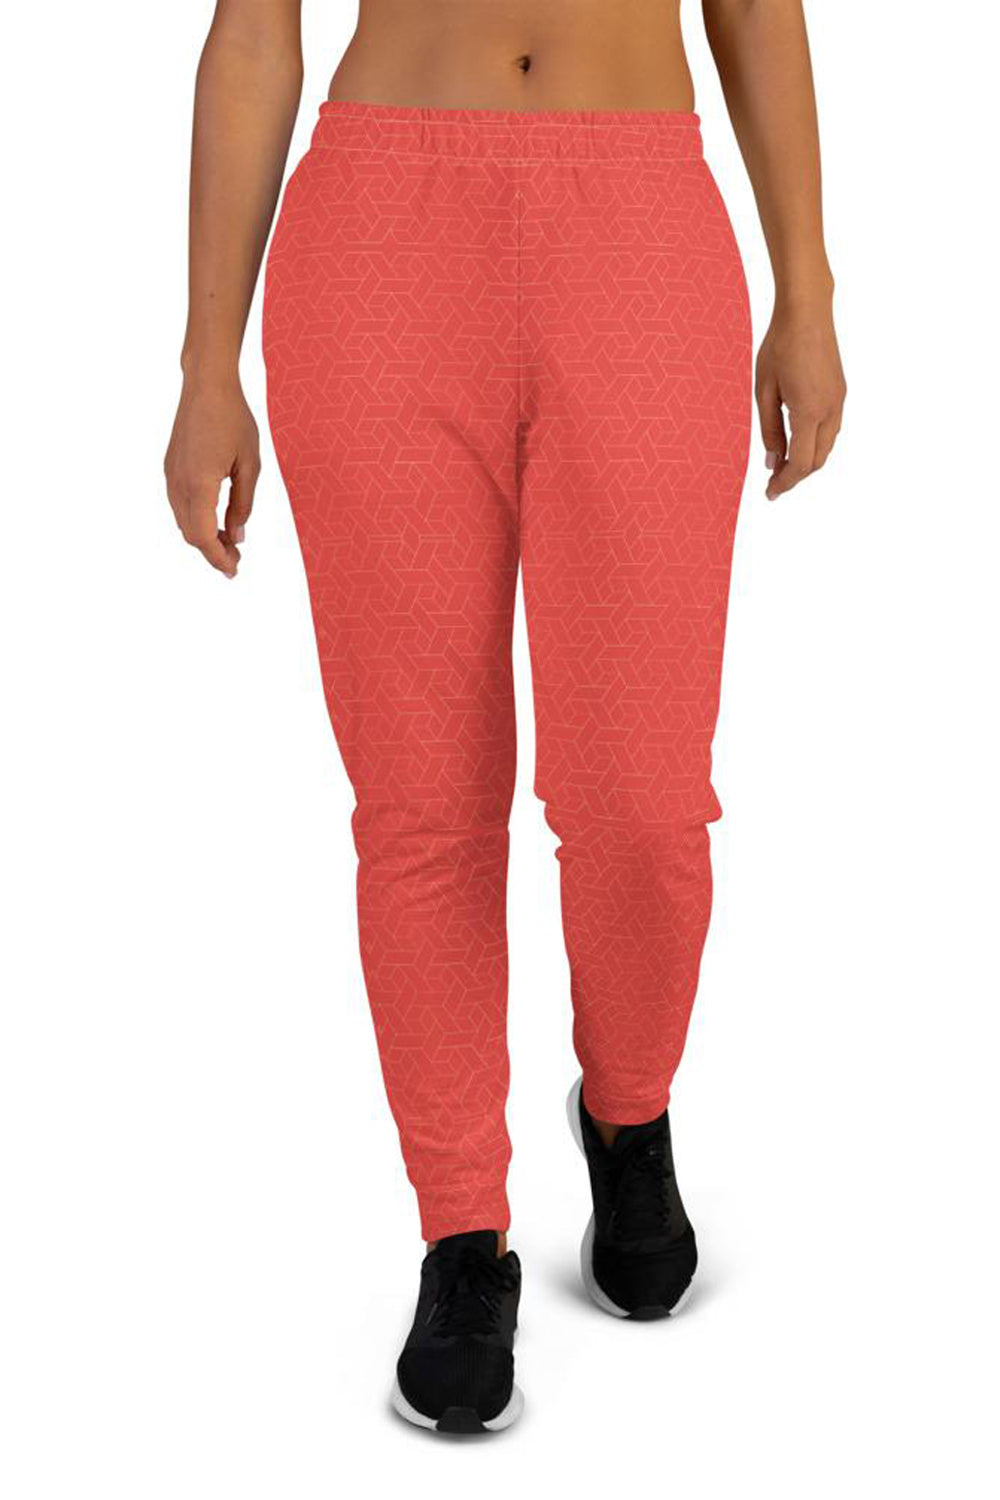 coral-red-joggers-for-women